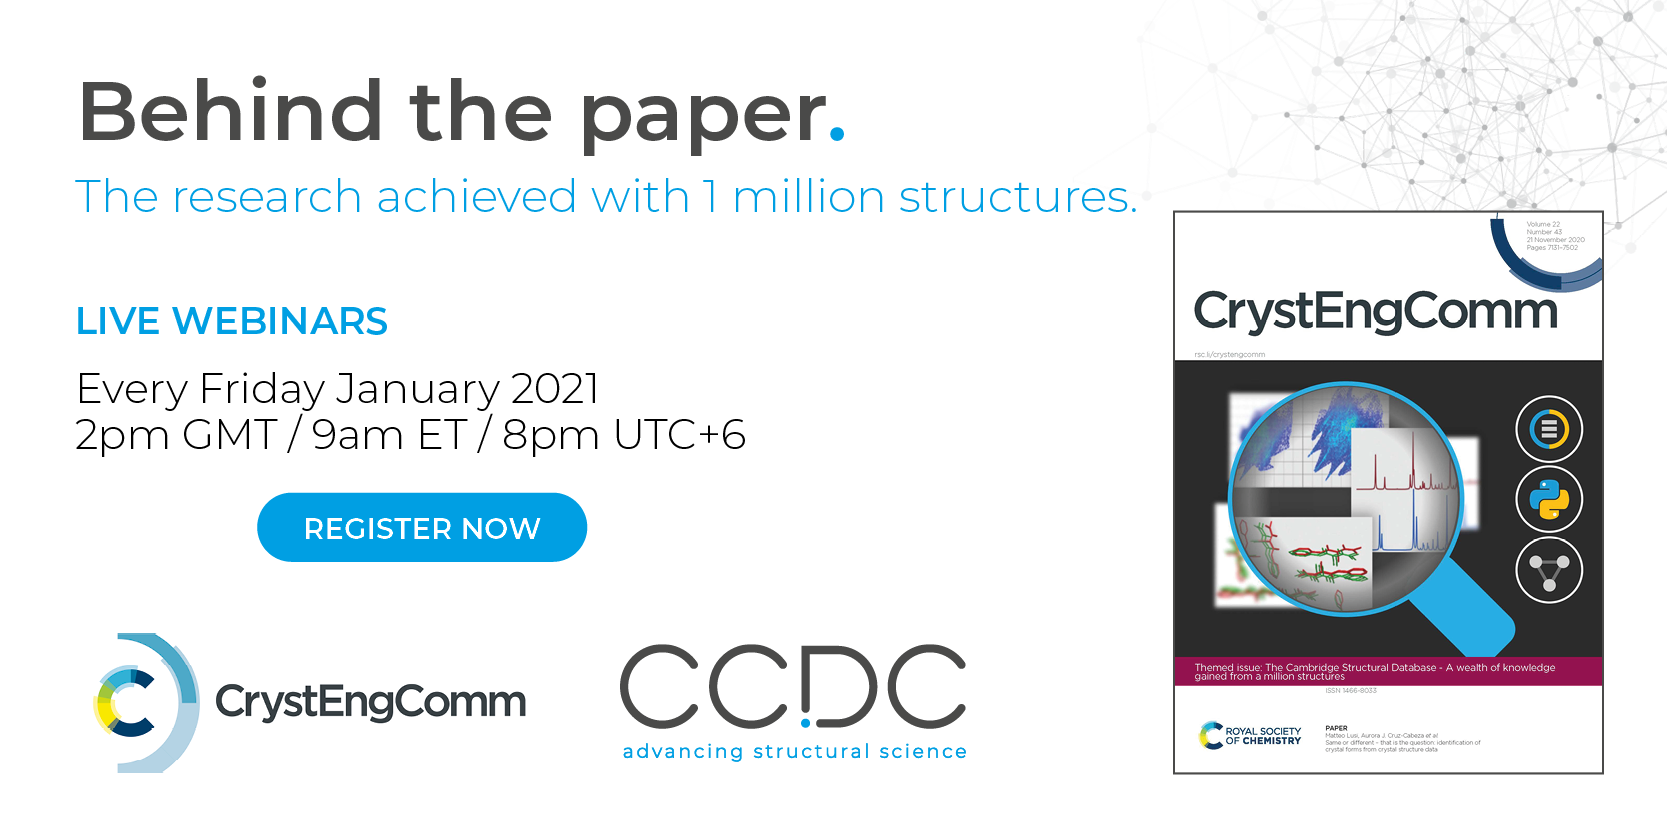 Behind the paper CCDC CrystEngComm webinar